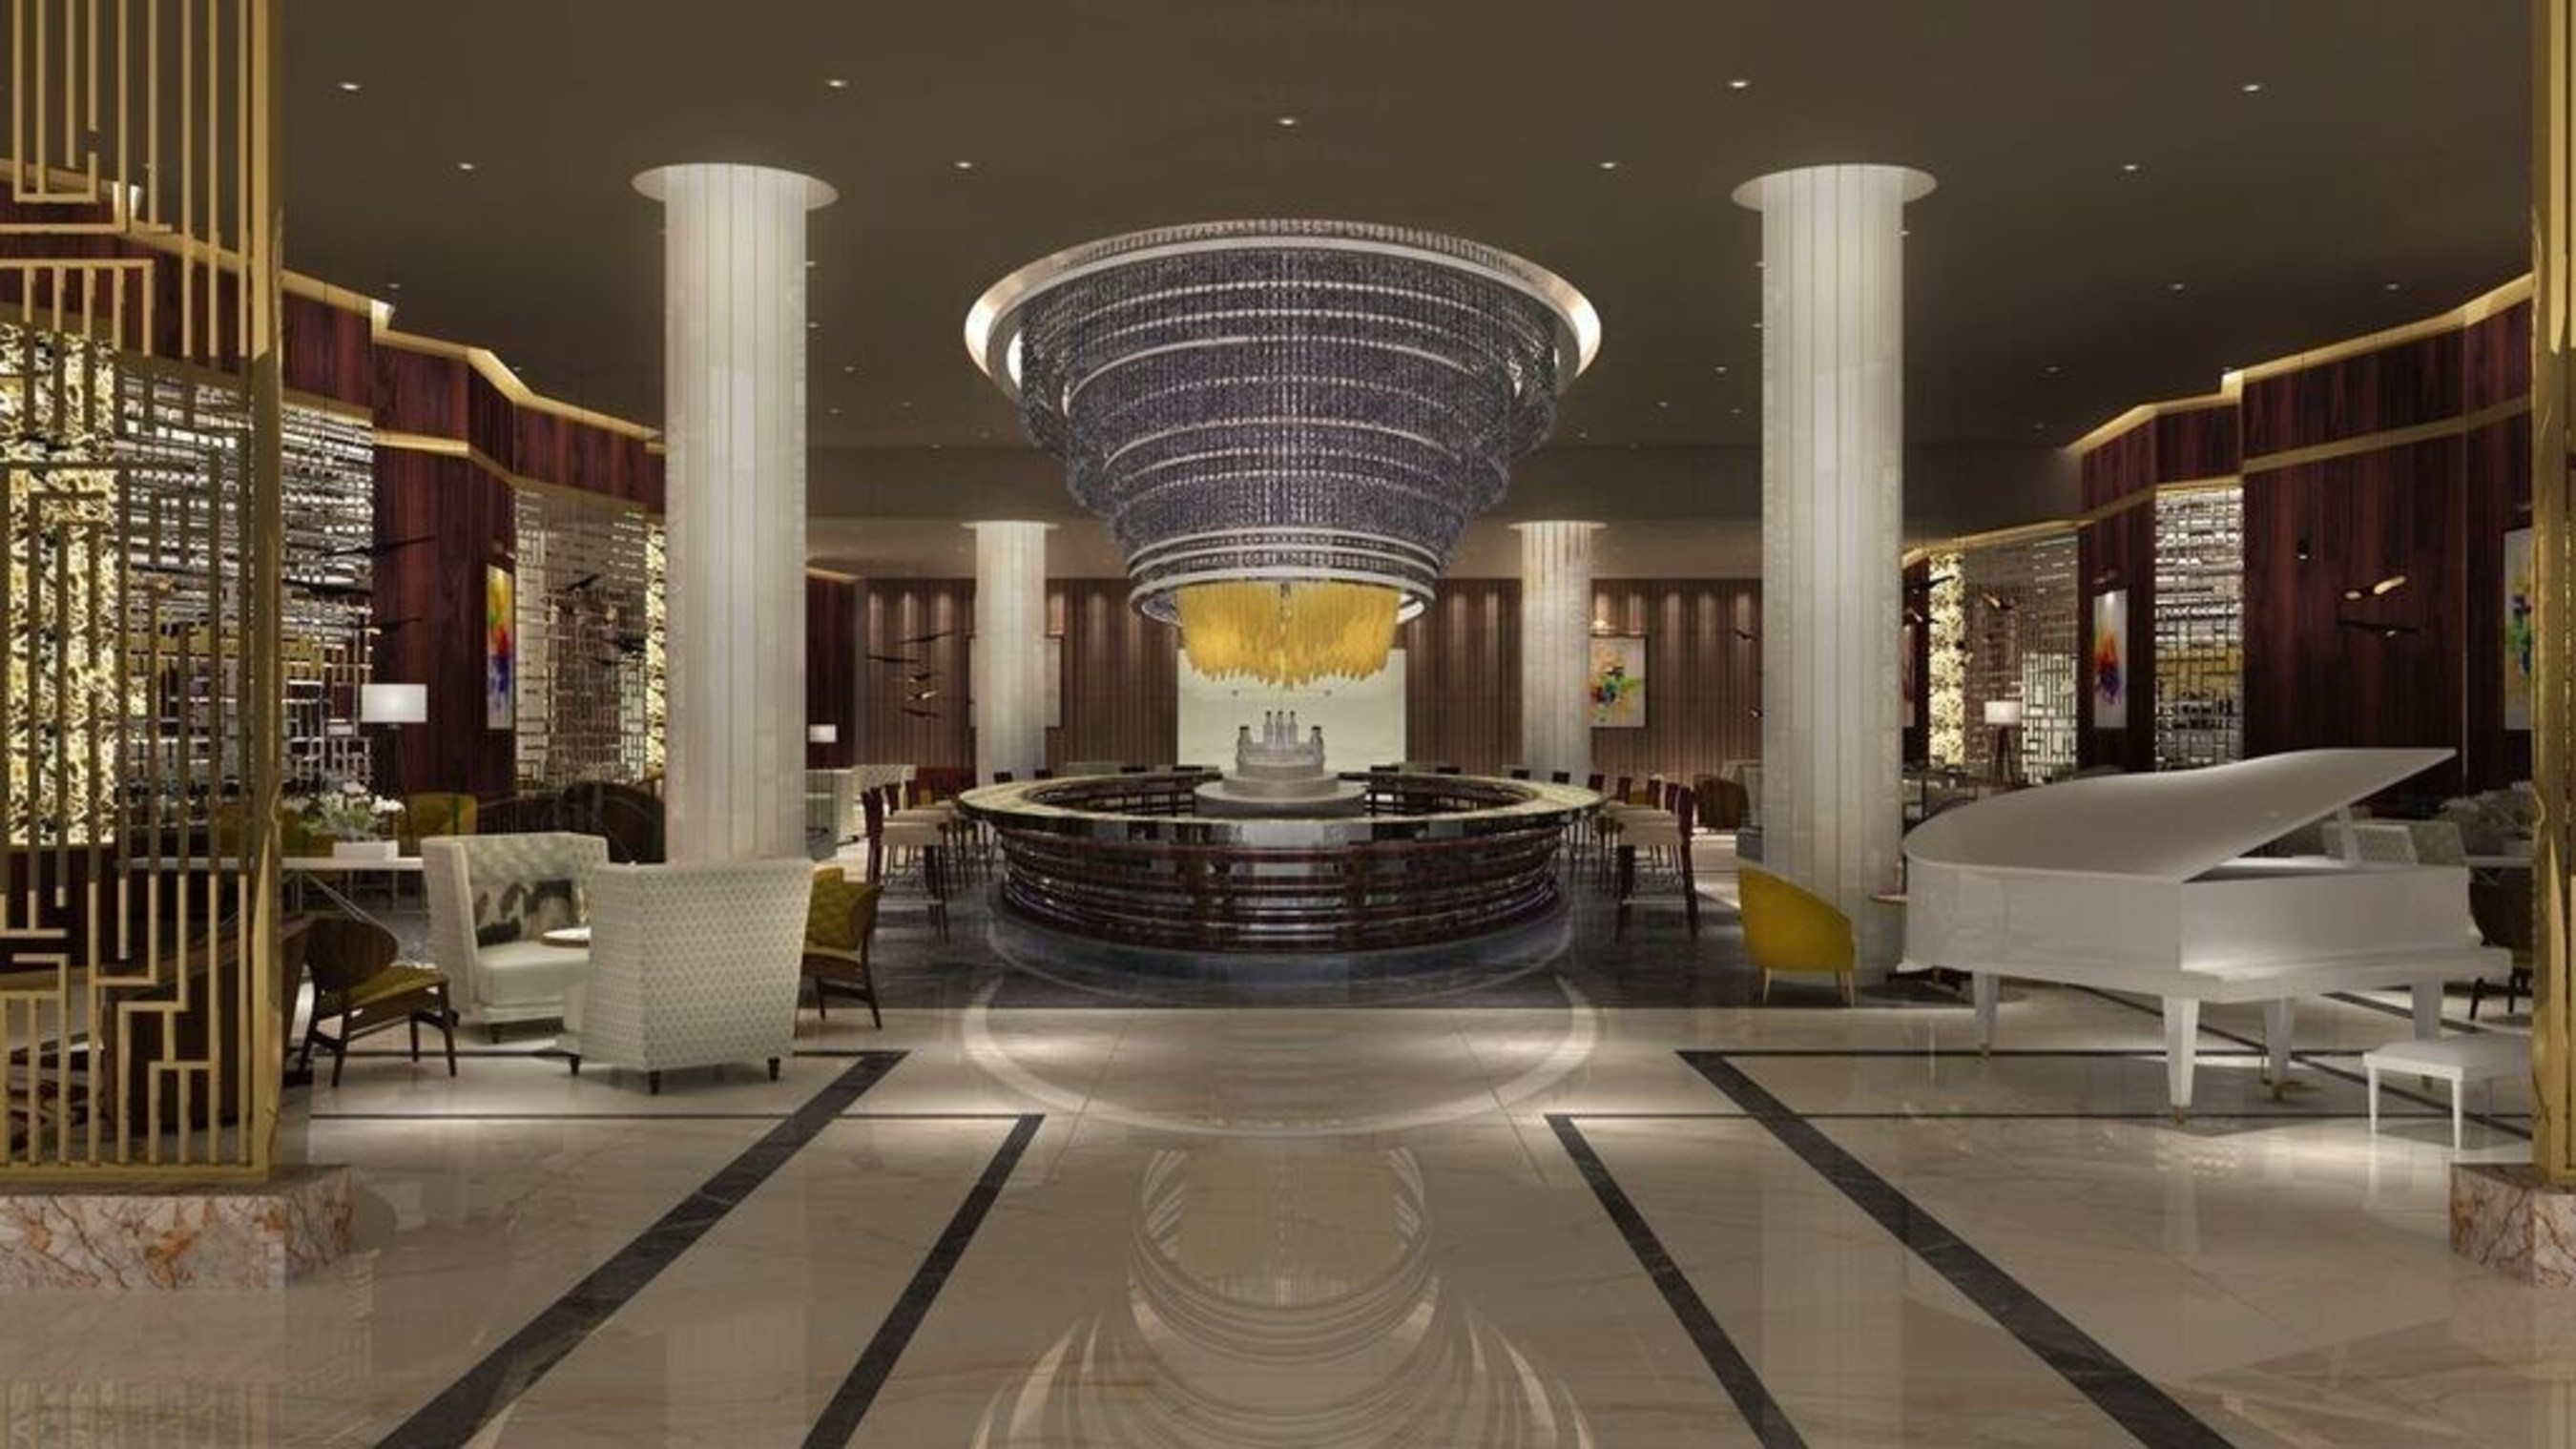 Moon Palace Golf & Spa Resort's Moon Grand is poised to become a luxury hotel within the sprawling, AAA Four Diamond resort.